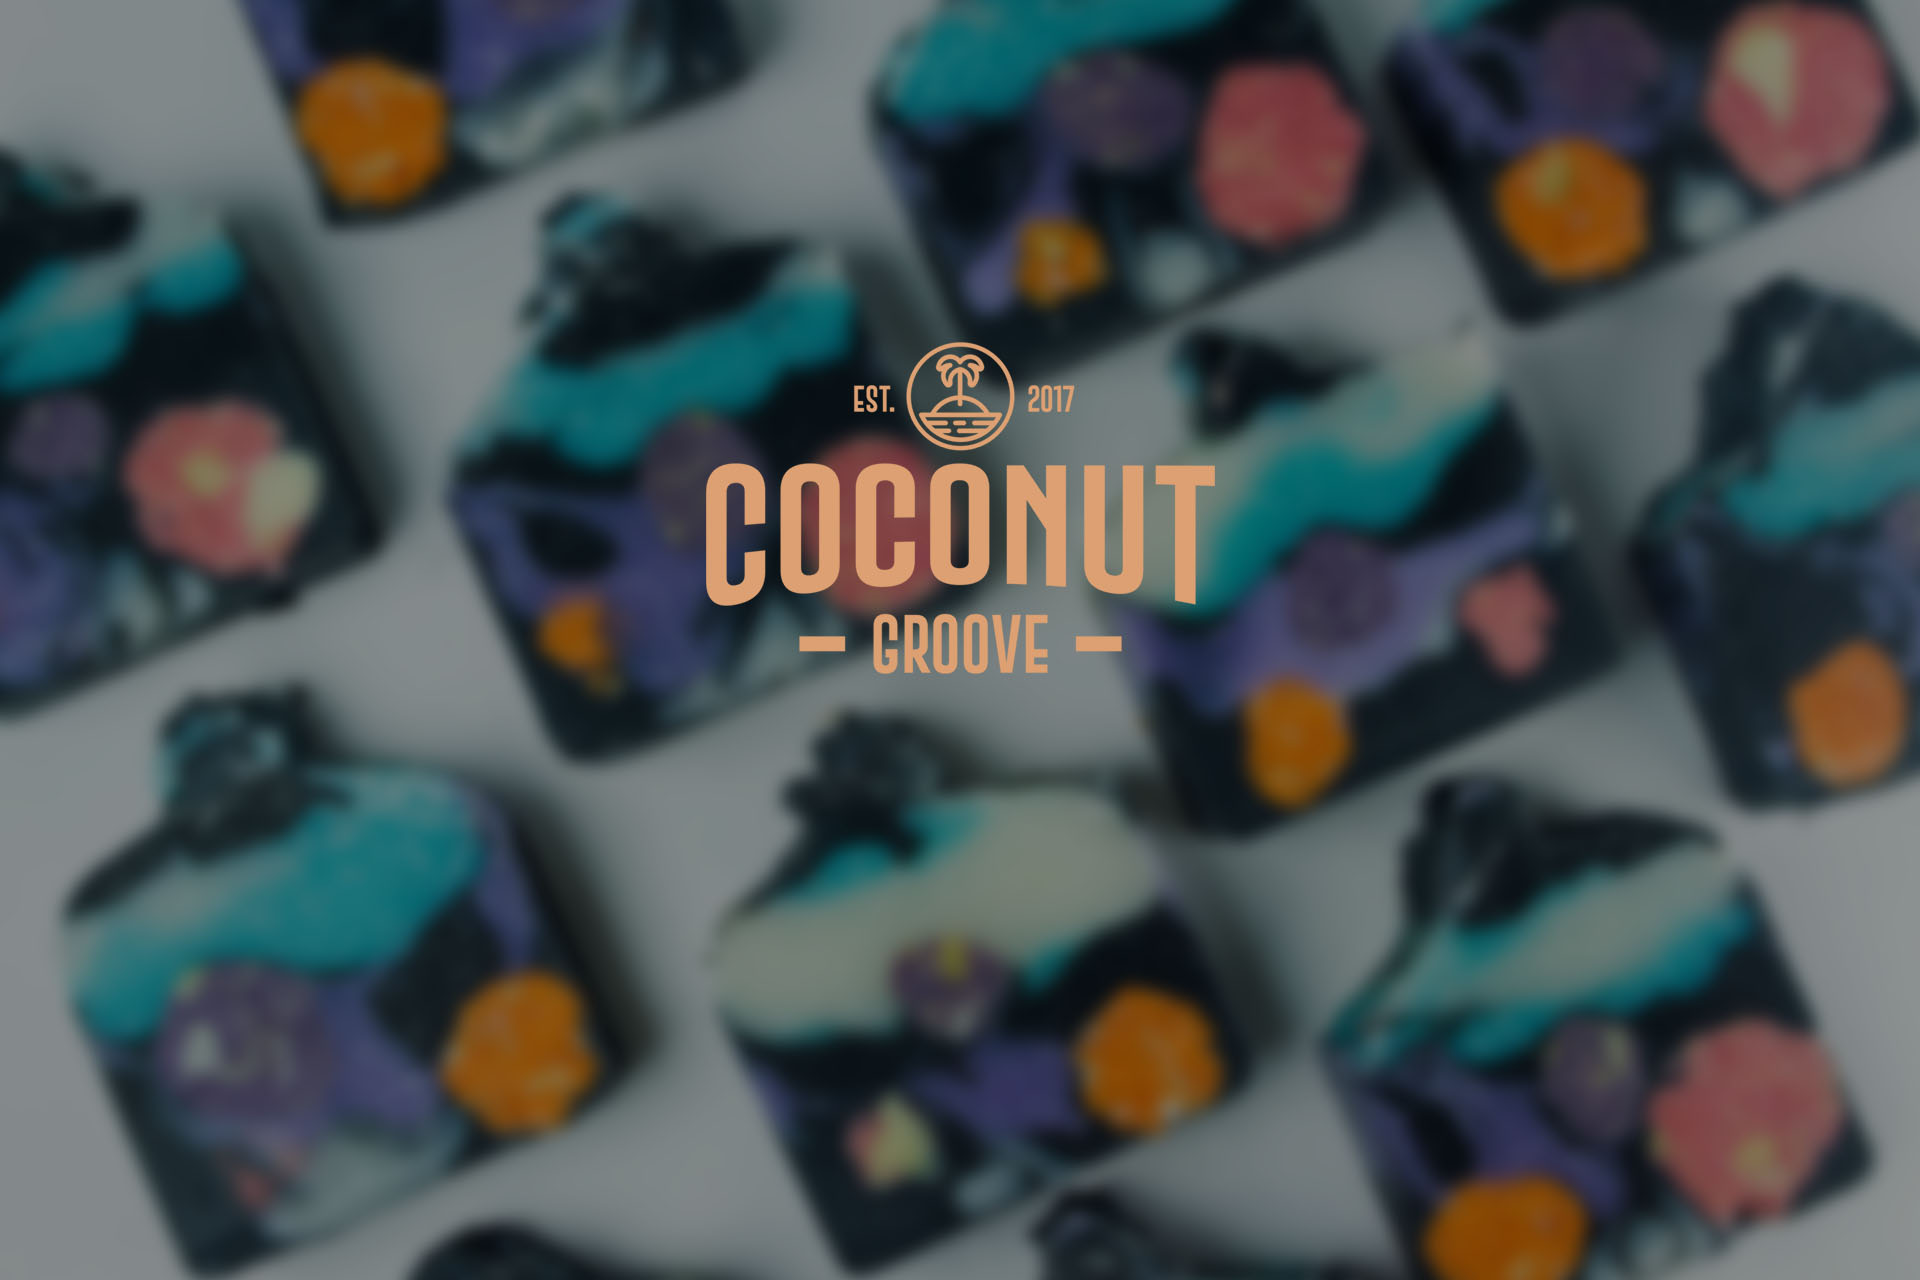 www.coconutgroovesoap.com